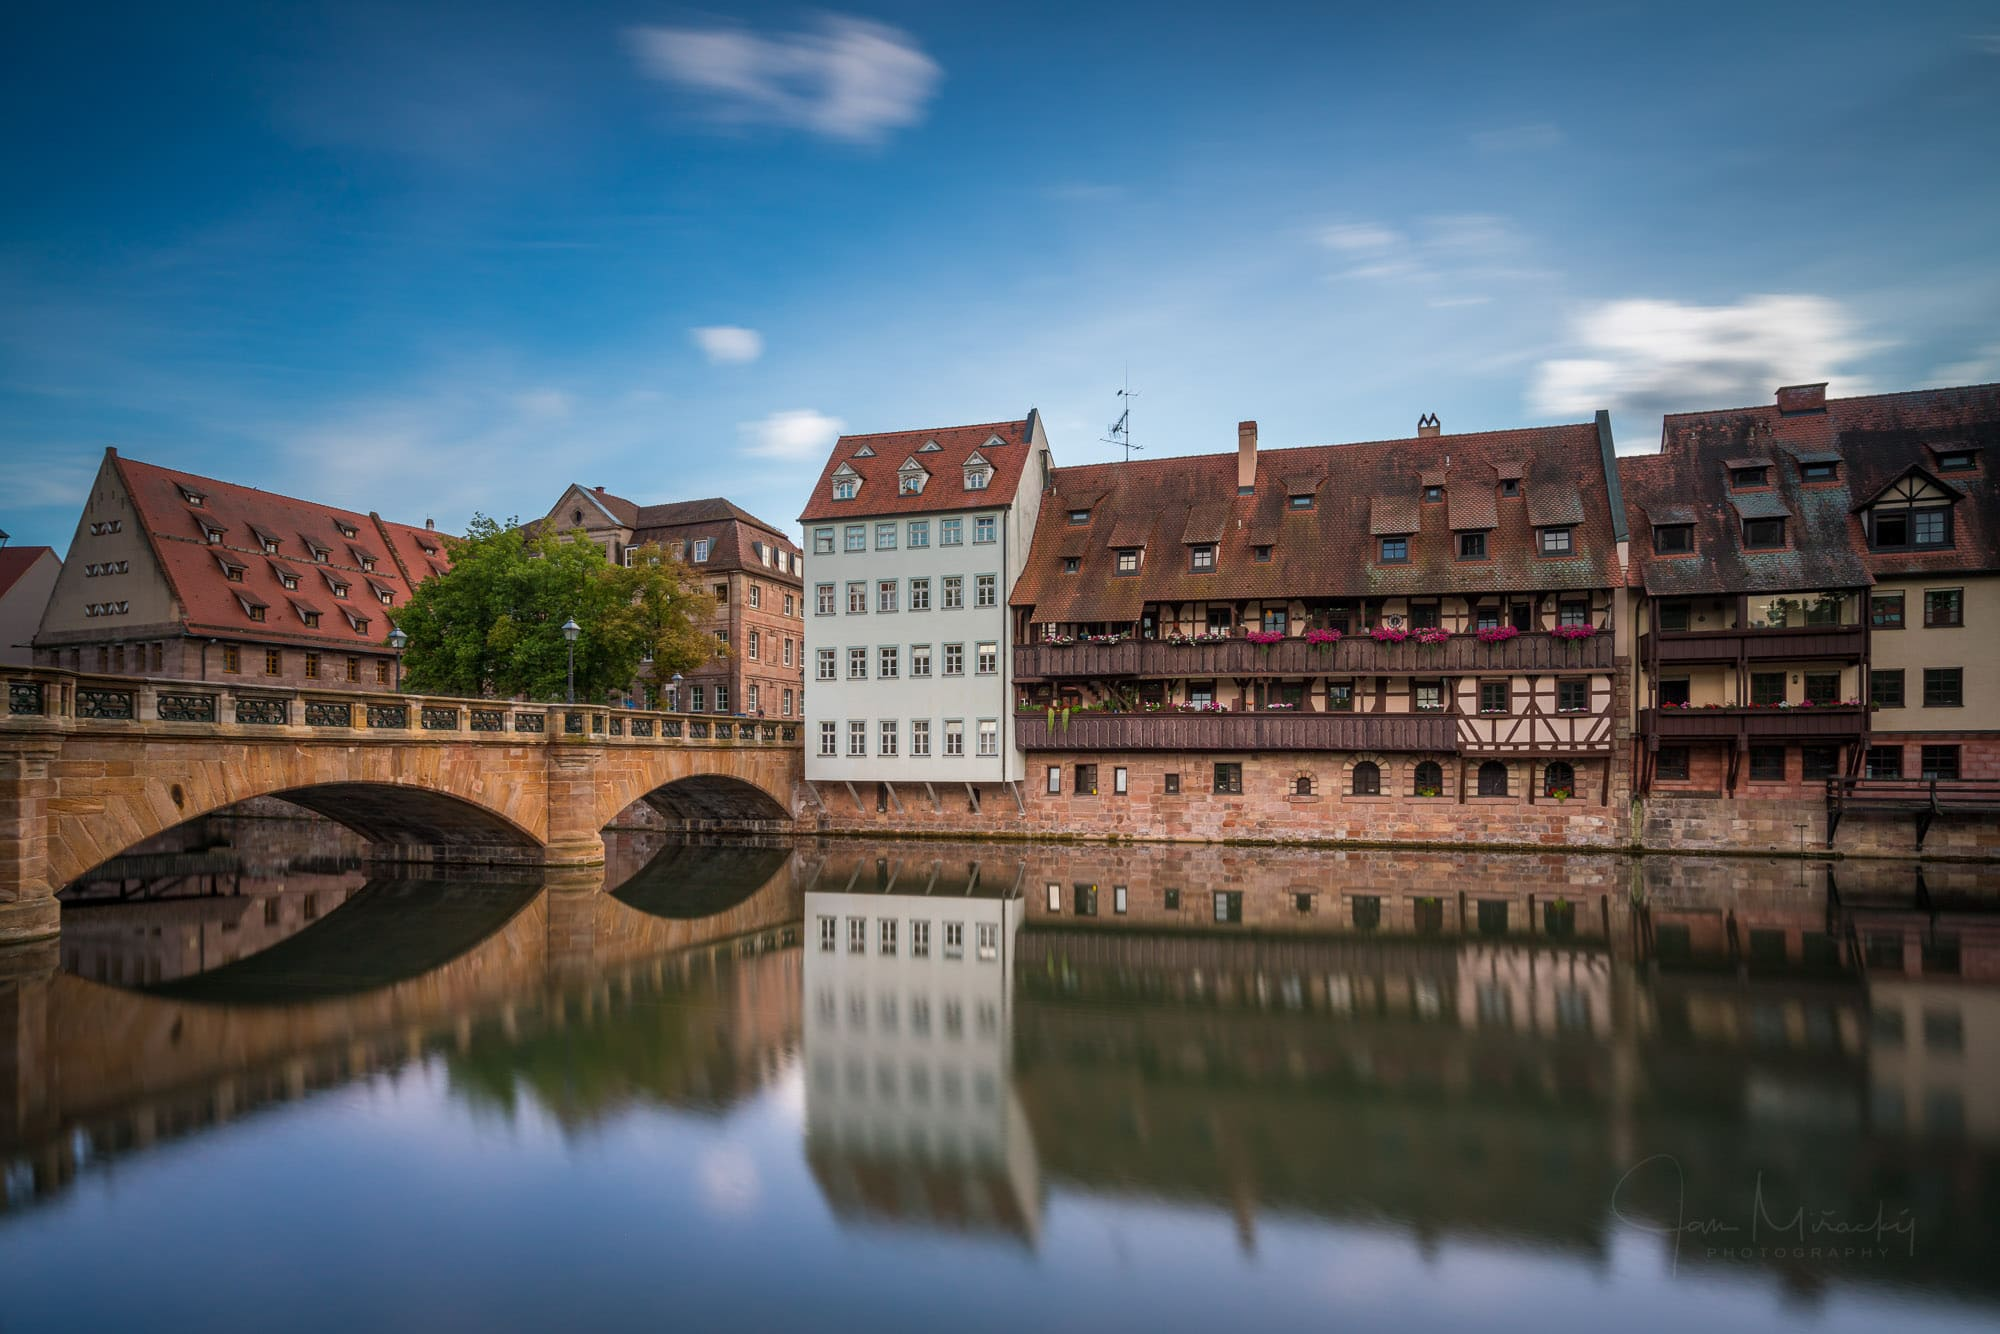 Maxbrücke in Nuremberg, Germany